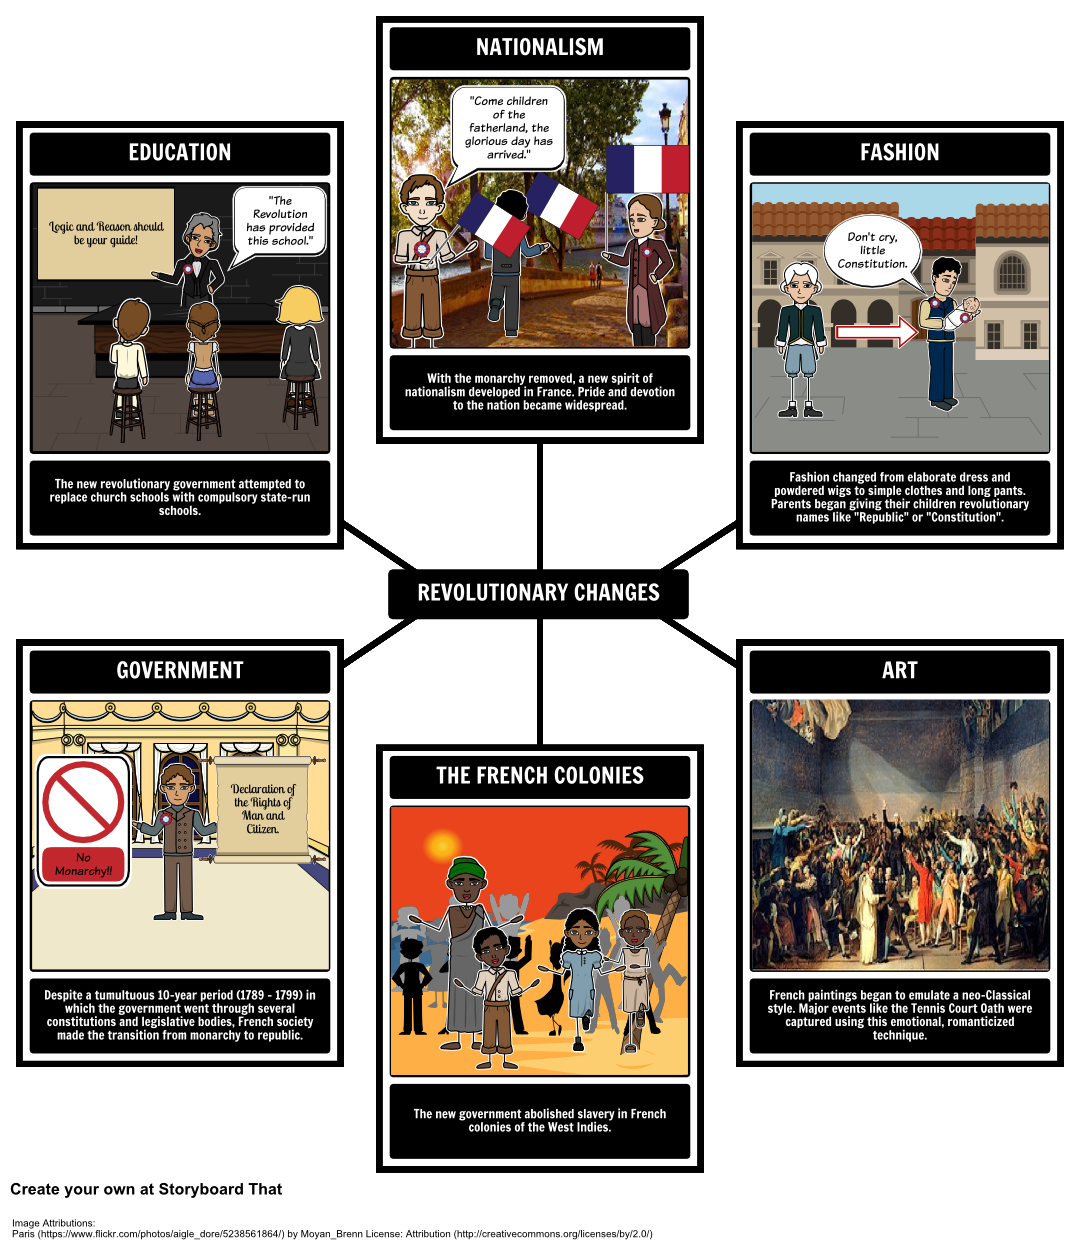 French Revolution Revolutionary Changes The Revolution Turned French Society On Its Ear But What Else French Revolution History Lesson Plans Teacher Guides